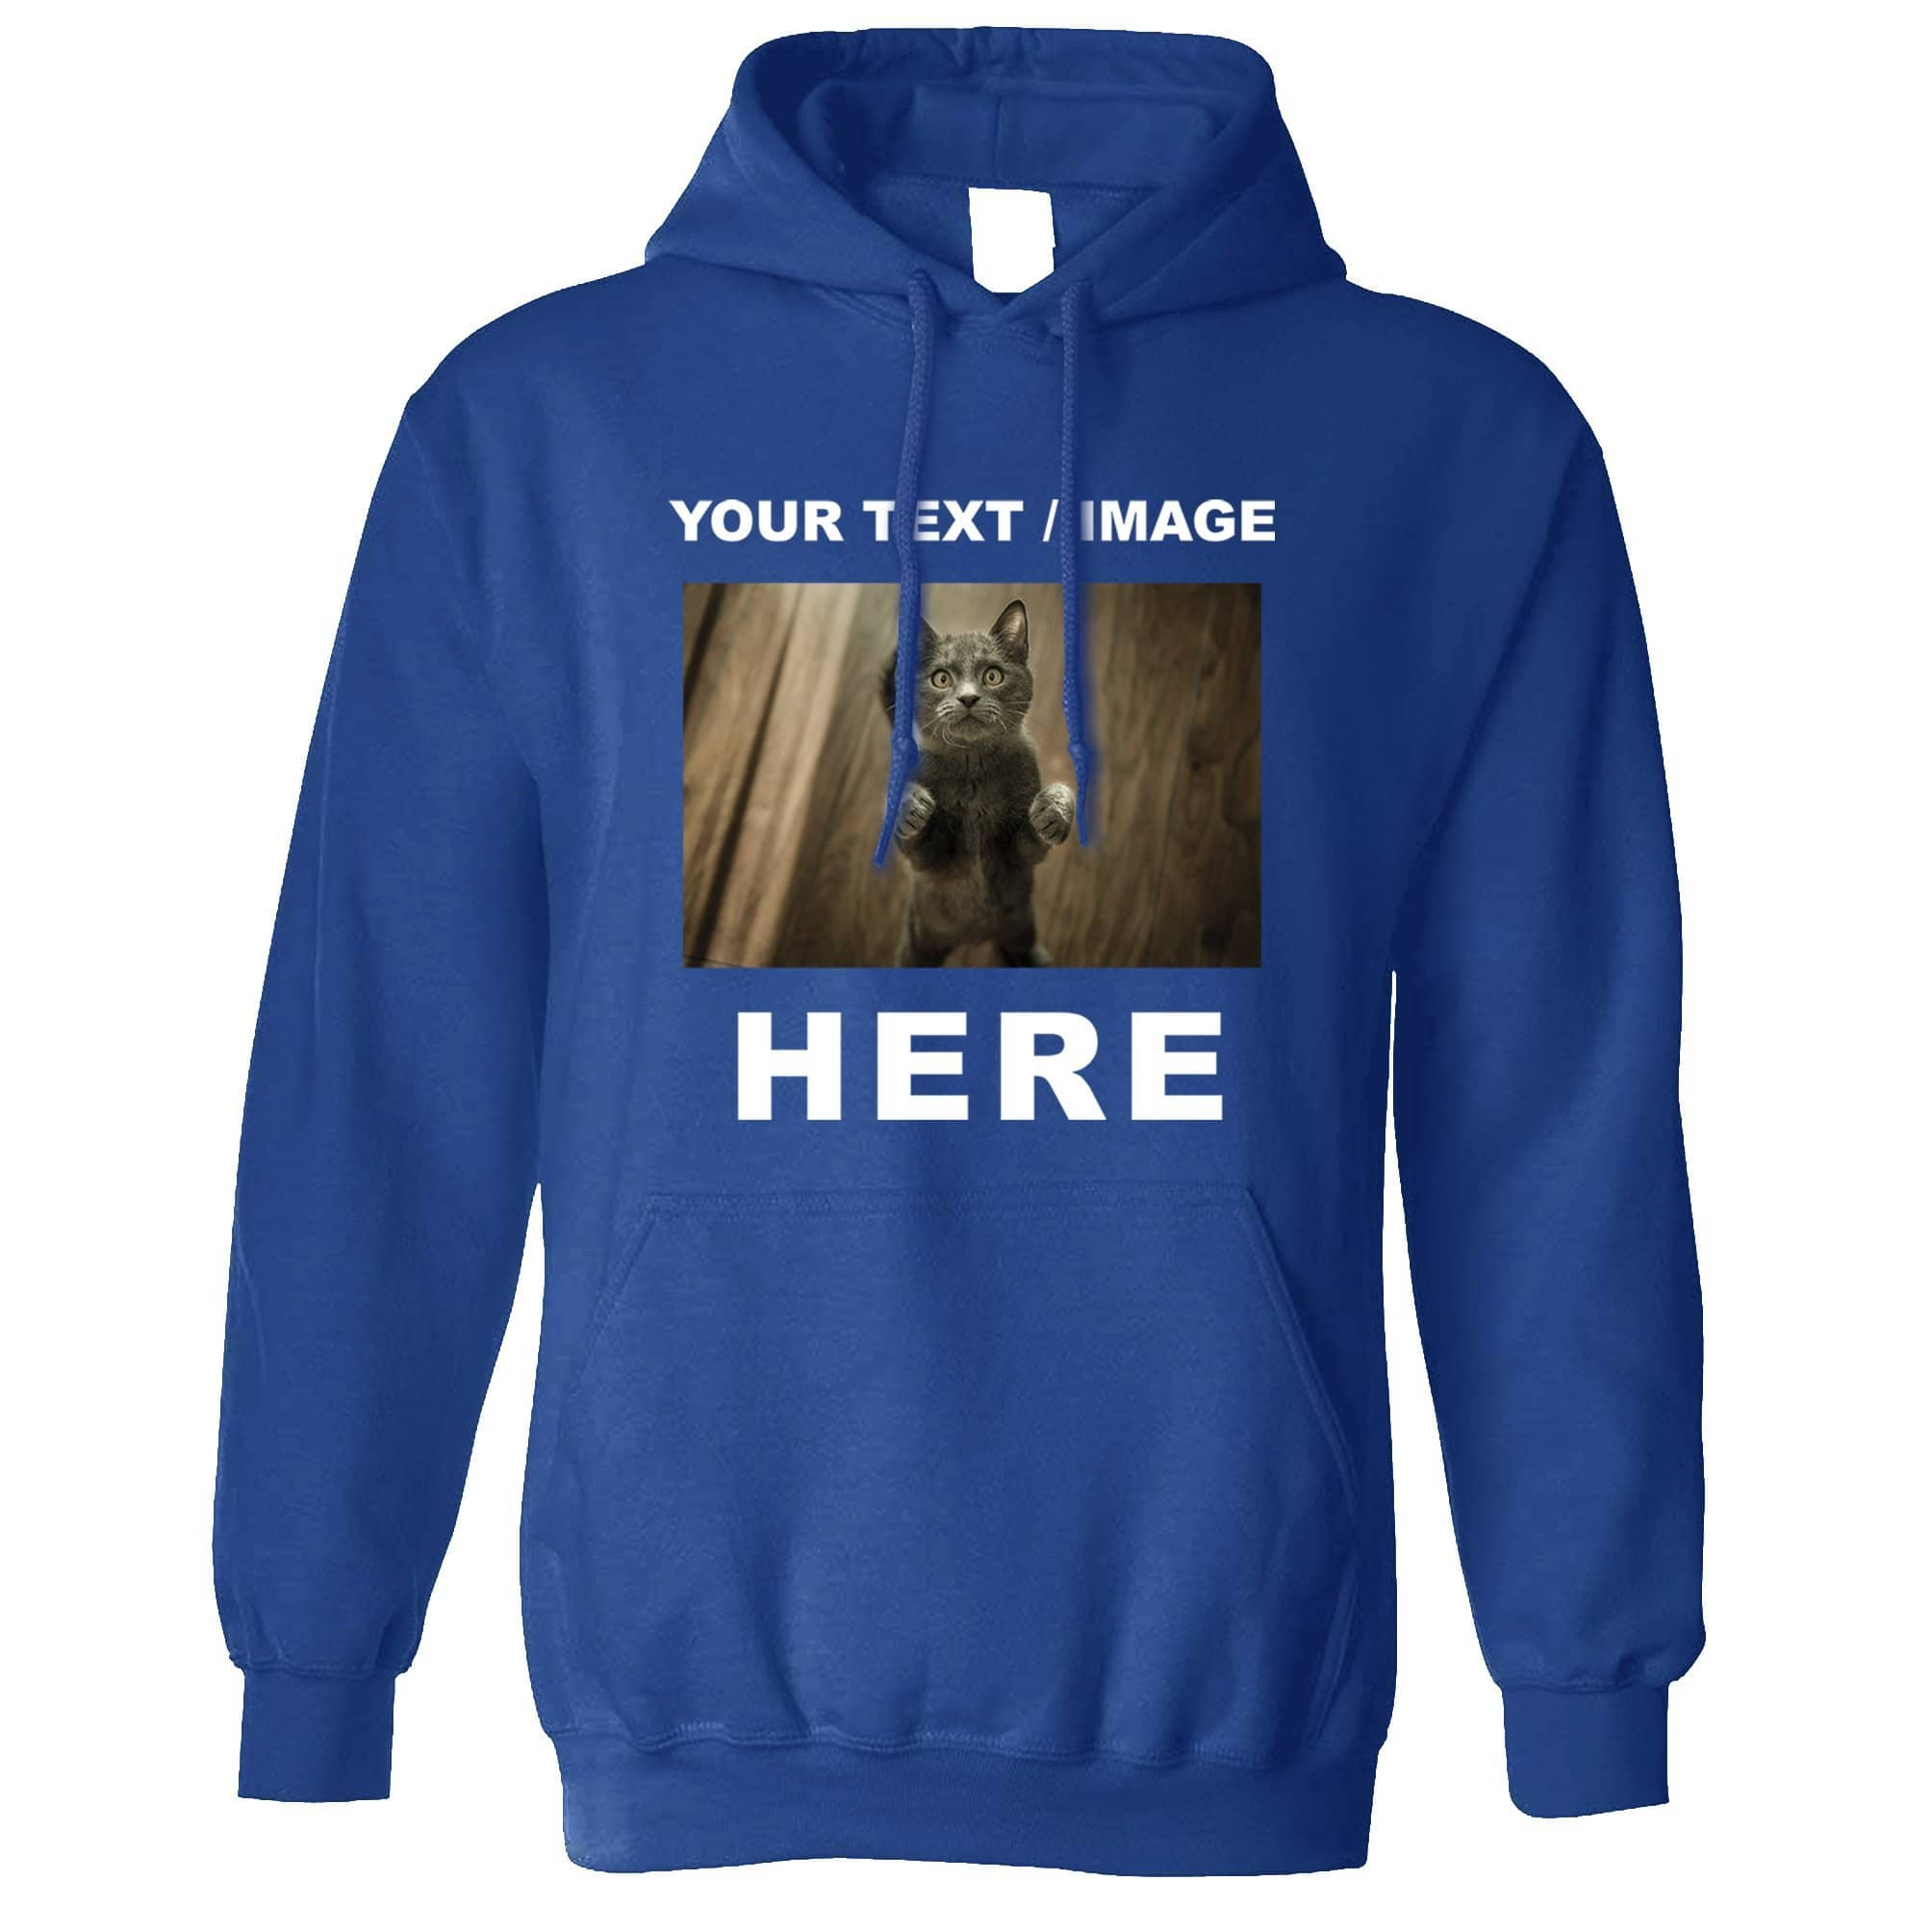 Custom Printed Hoodie with Your Text or Image